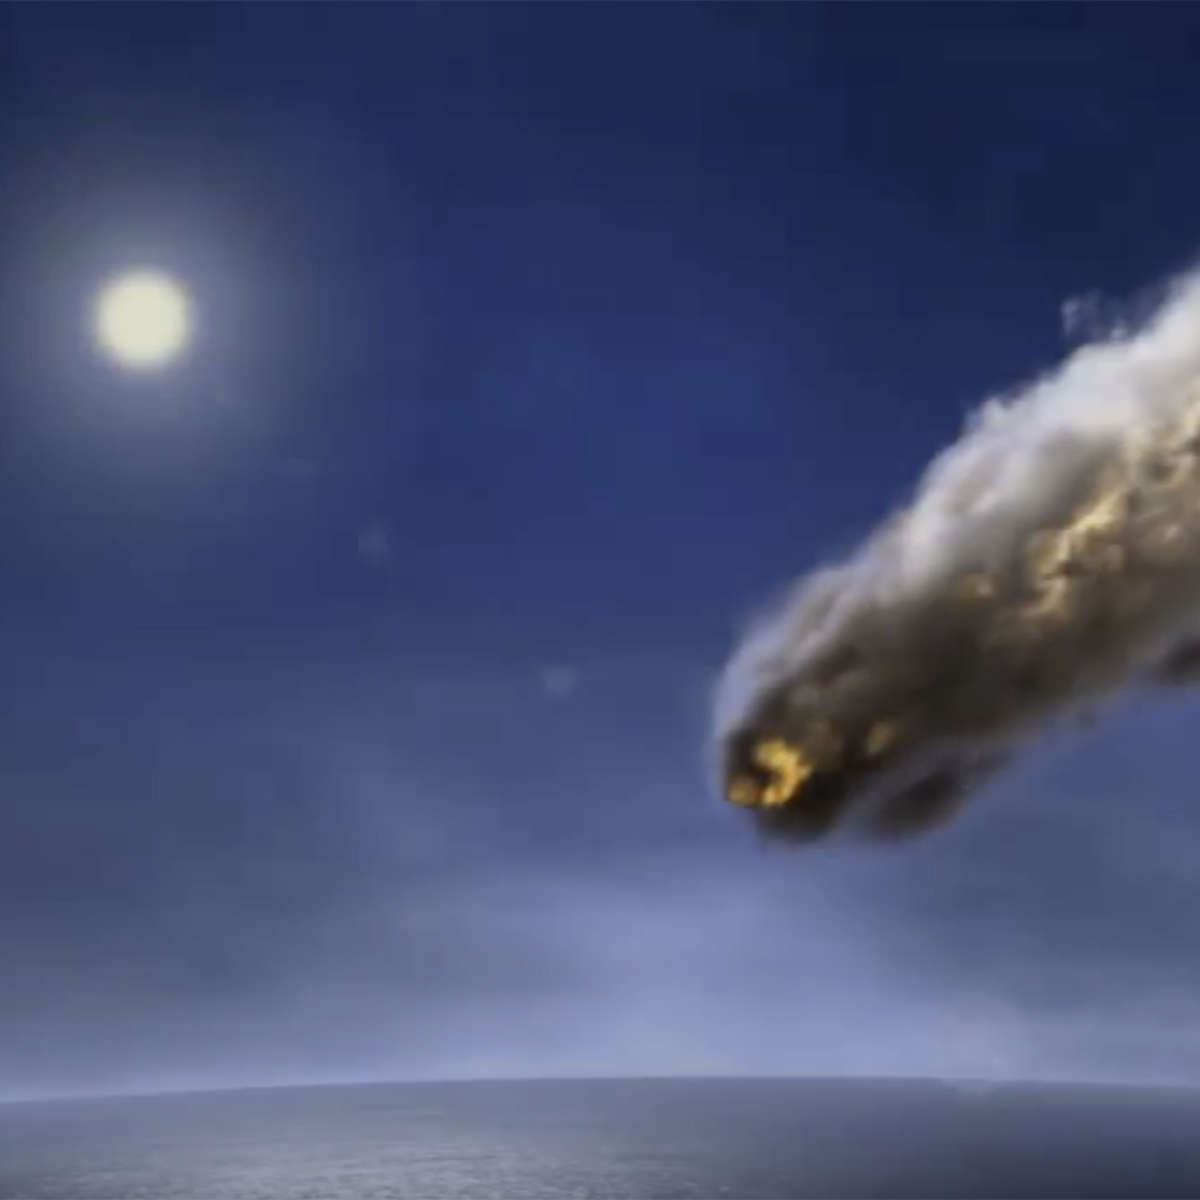 Artwork depicting the entry of asteroid 2014 AA into Earth's atmosphere. Credit: Dieter Spannknebe / Getty images / NASA